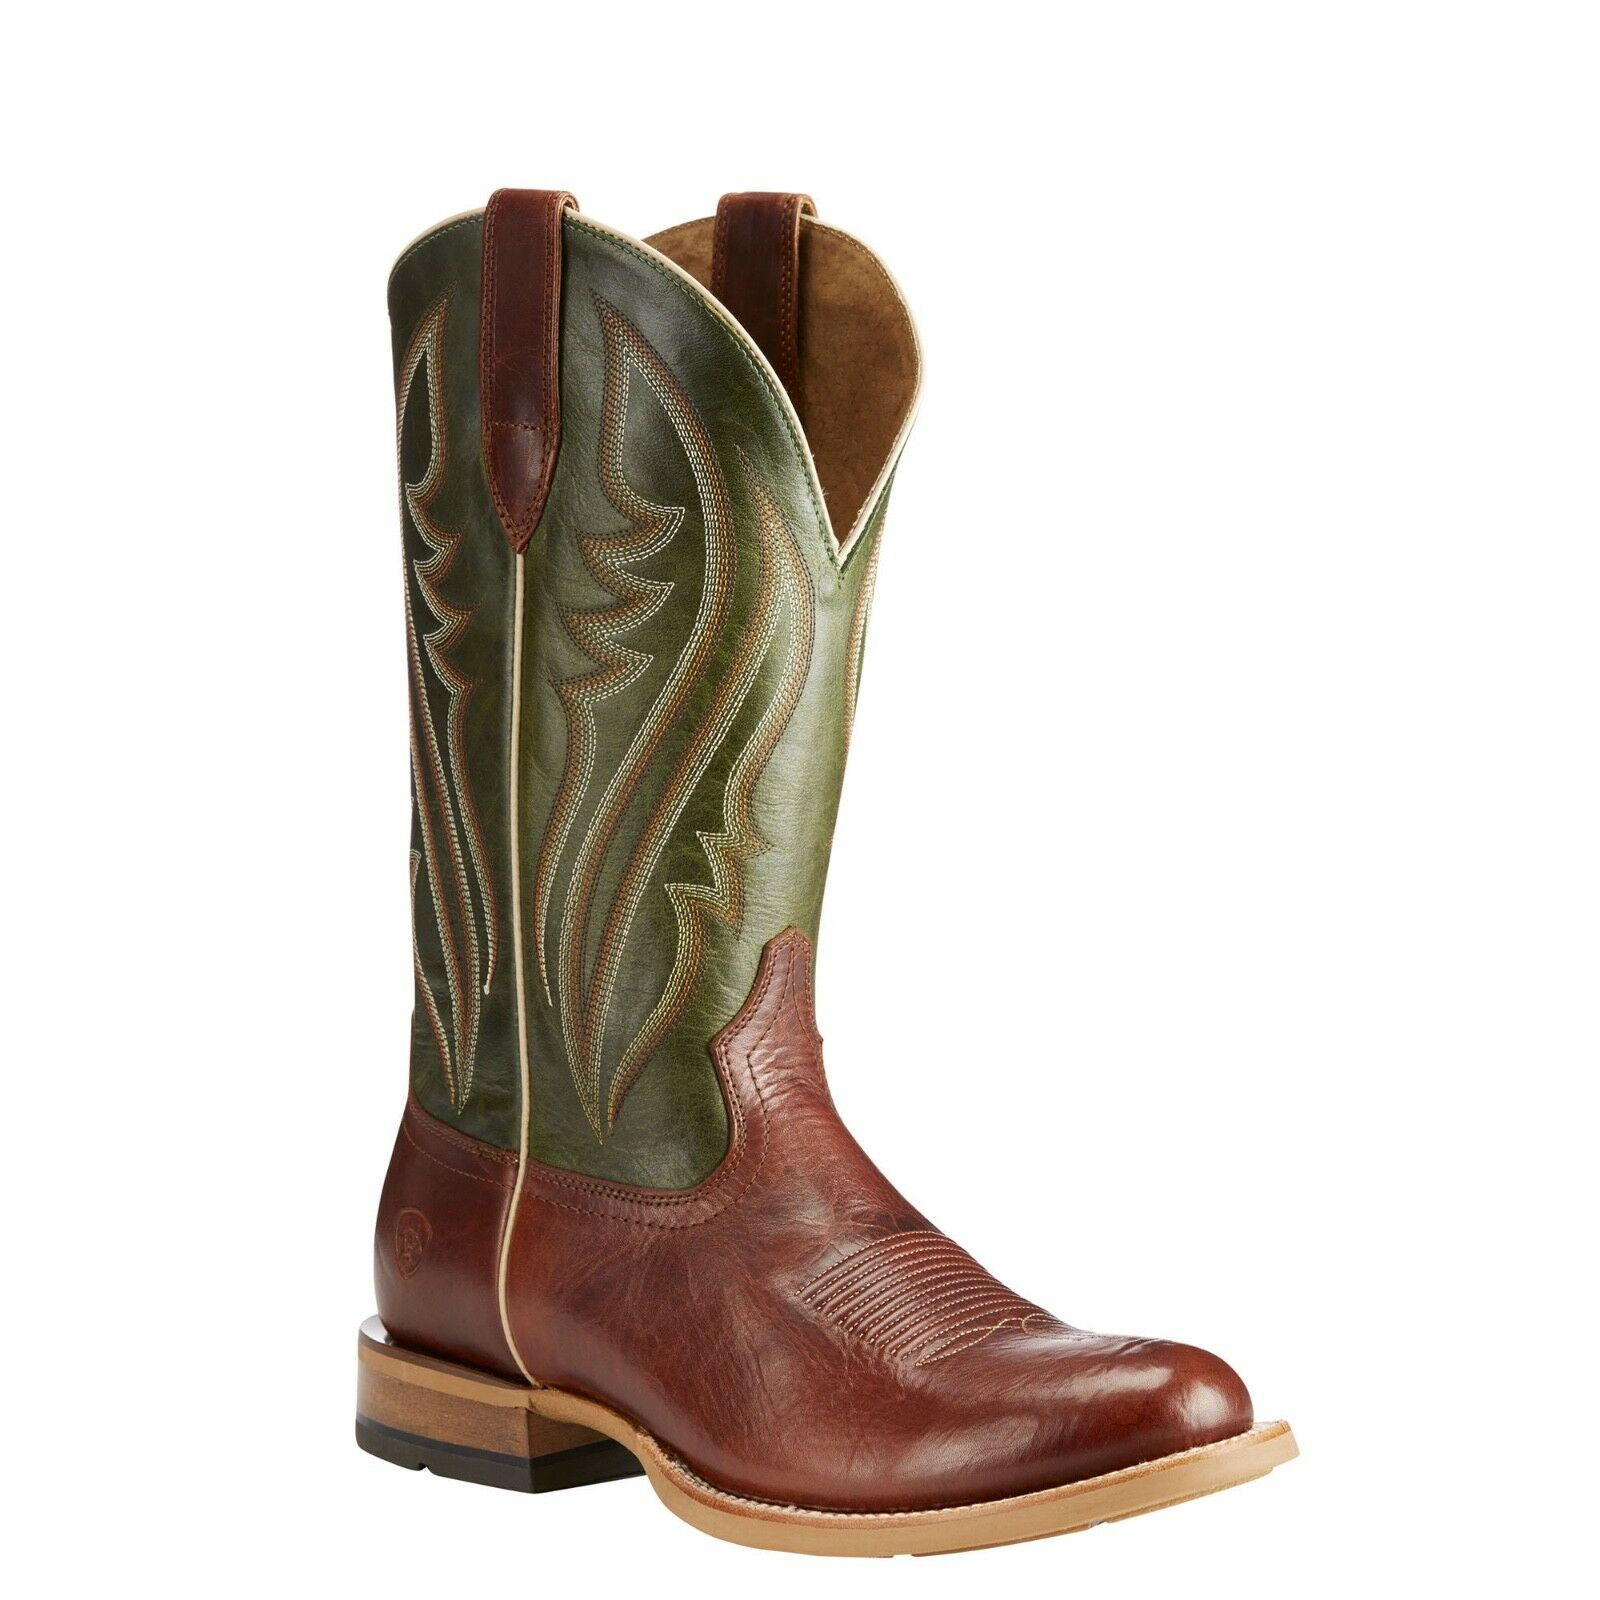 Ariat® Men's Match Up Cowboy Cognac & Neon Lime Green Boots